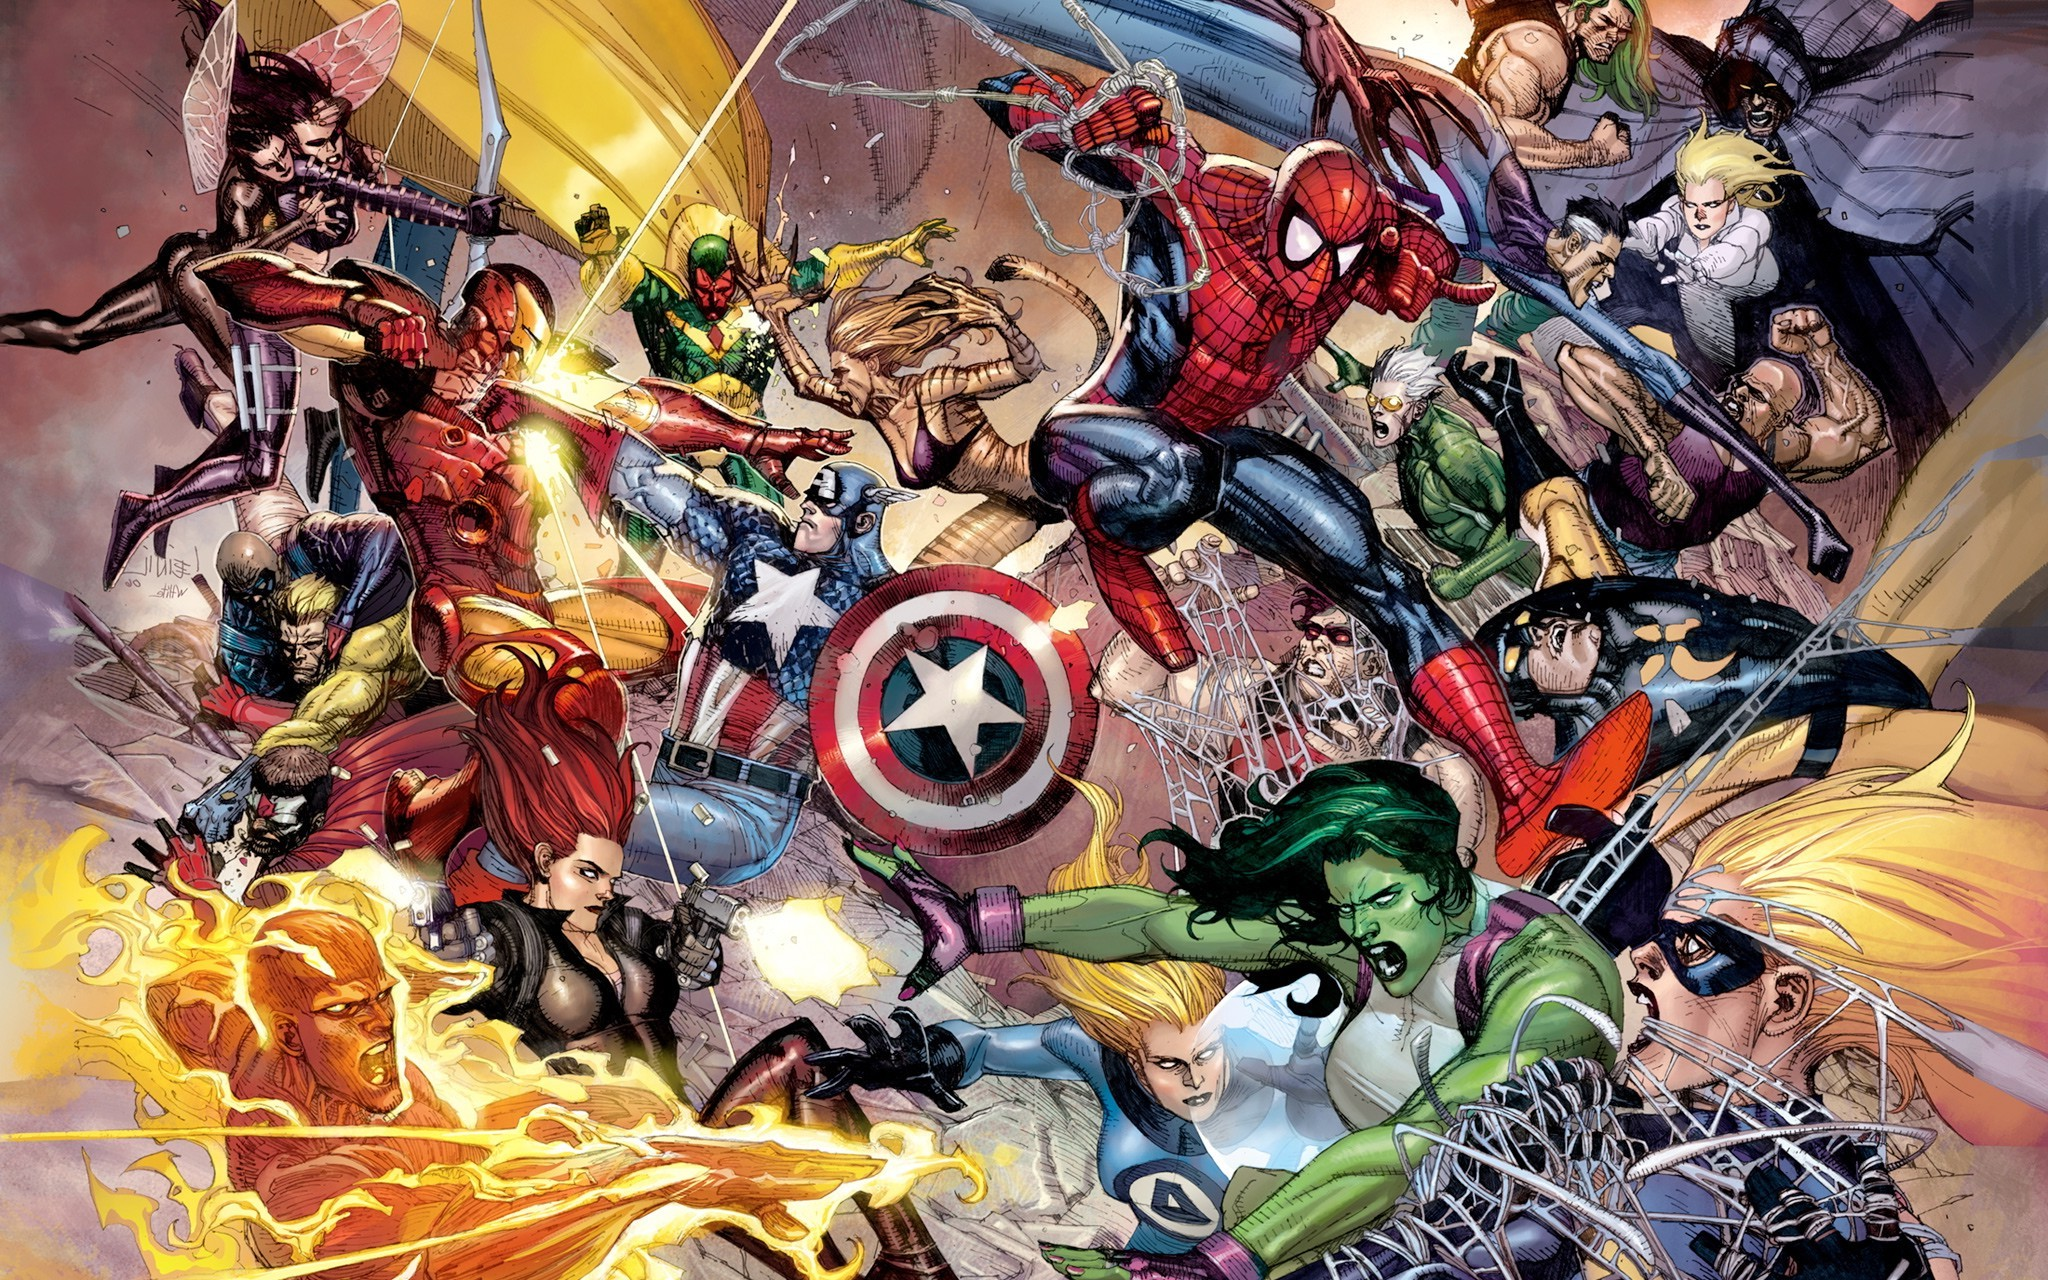 Res: 2048x1280, Marvel Comics Wallpapers 7 - 2048 X 1280